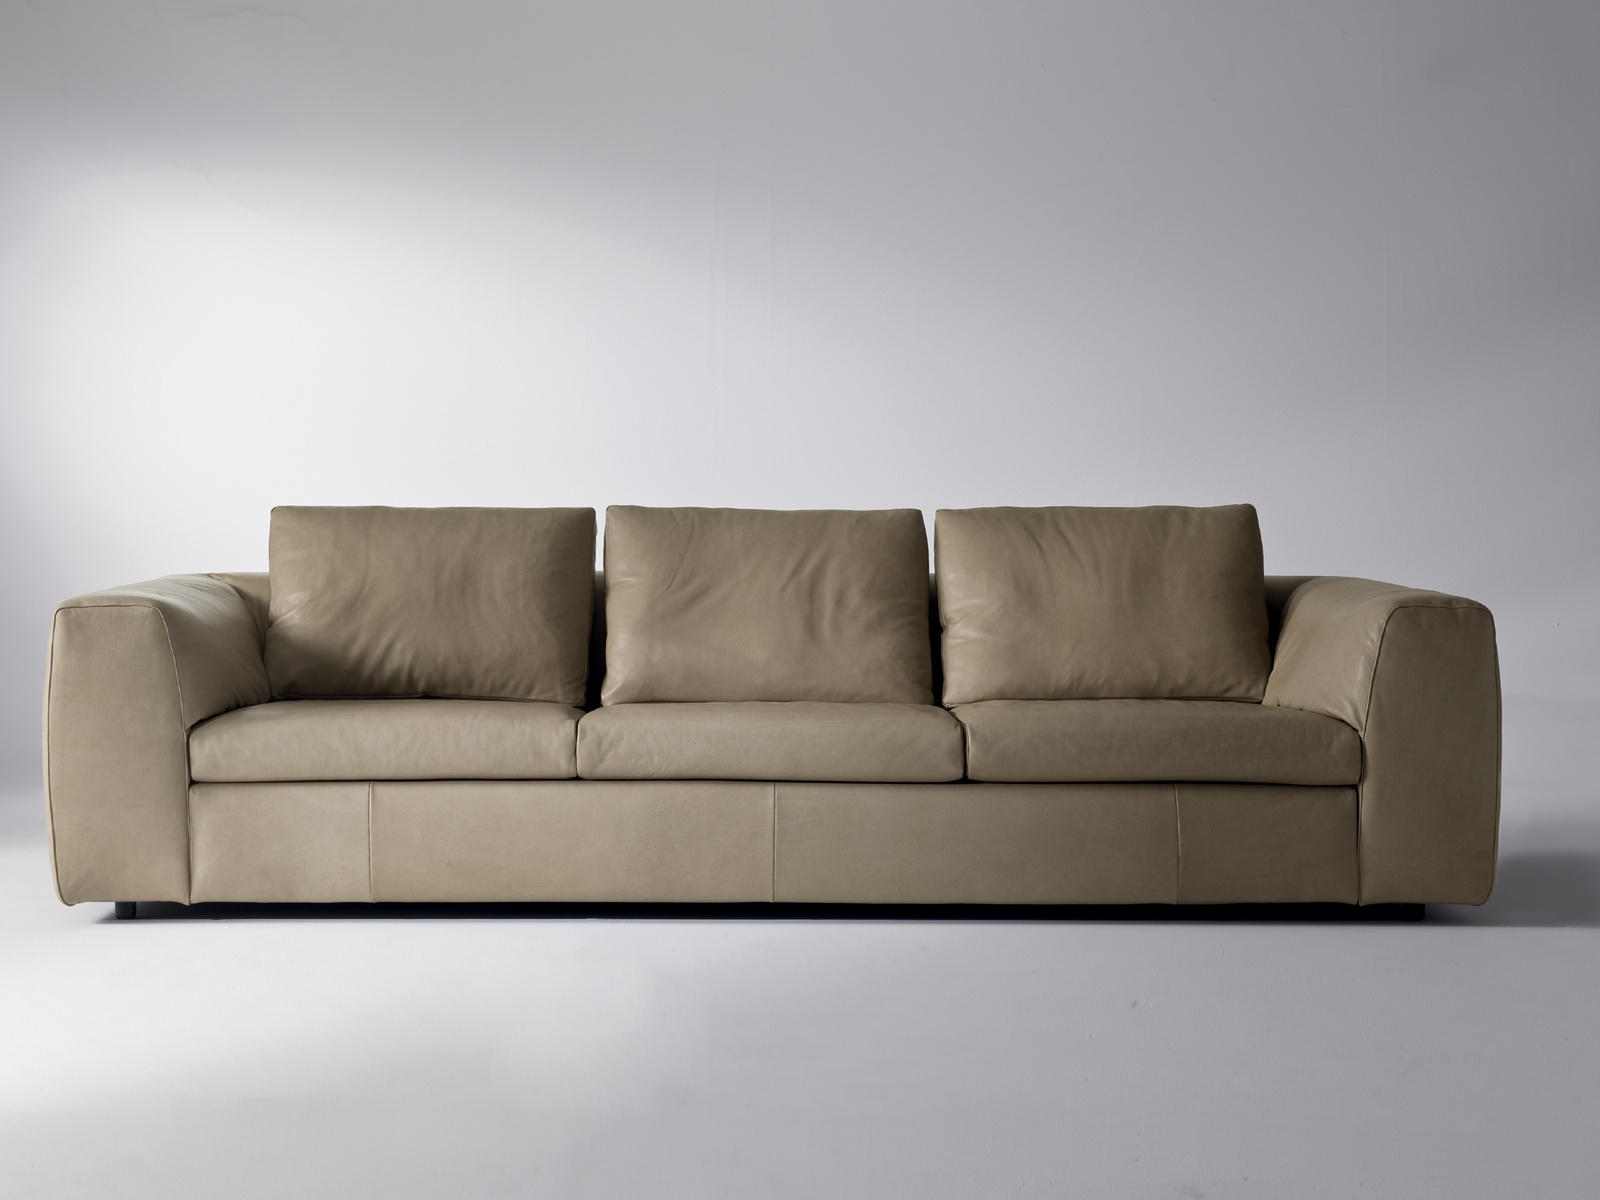 60 Three Seater Sofa Seater Sofa Custom Made Sofa Avworld Inside Three Seater Sofas (Image 2 of 15)